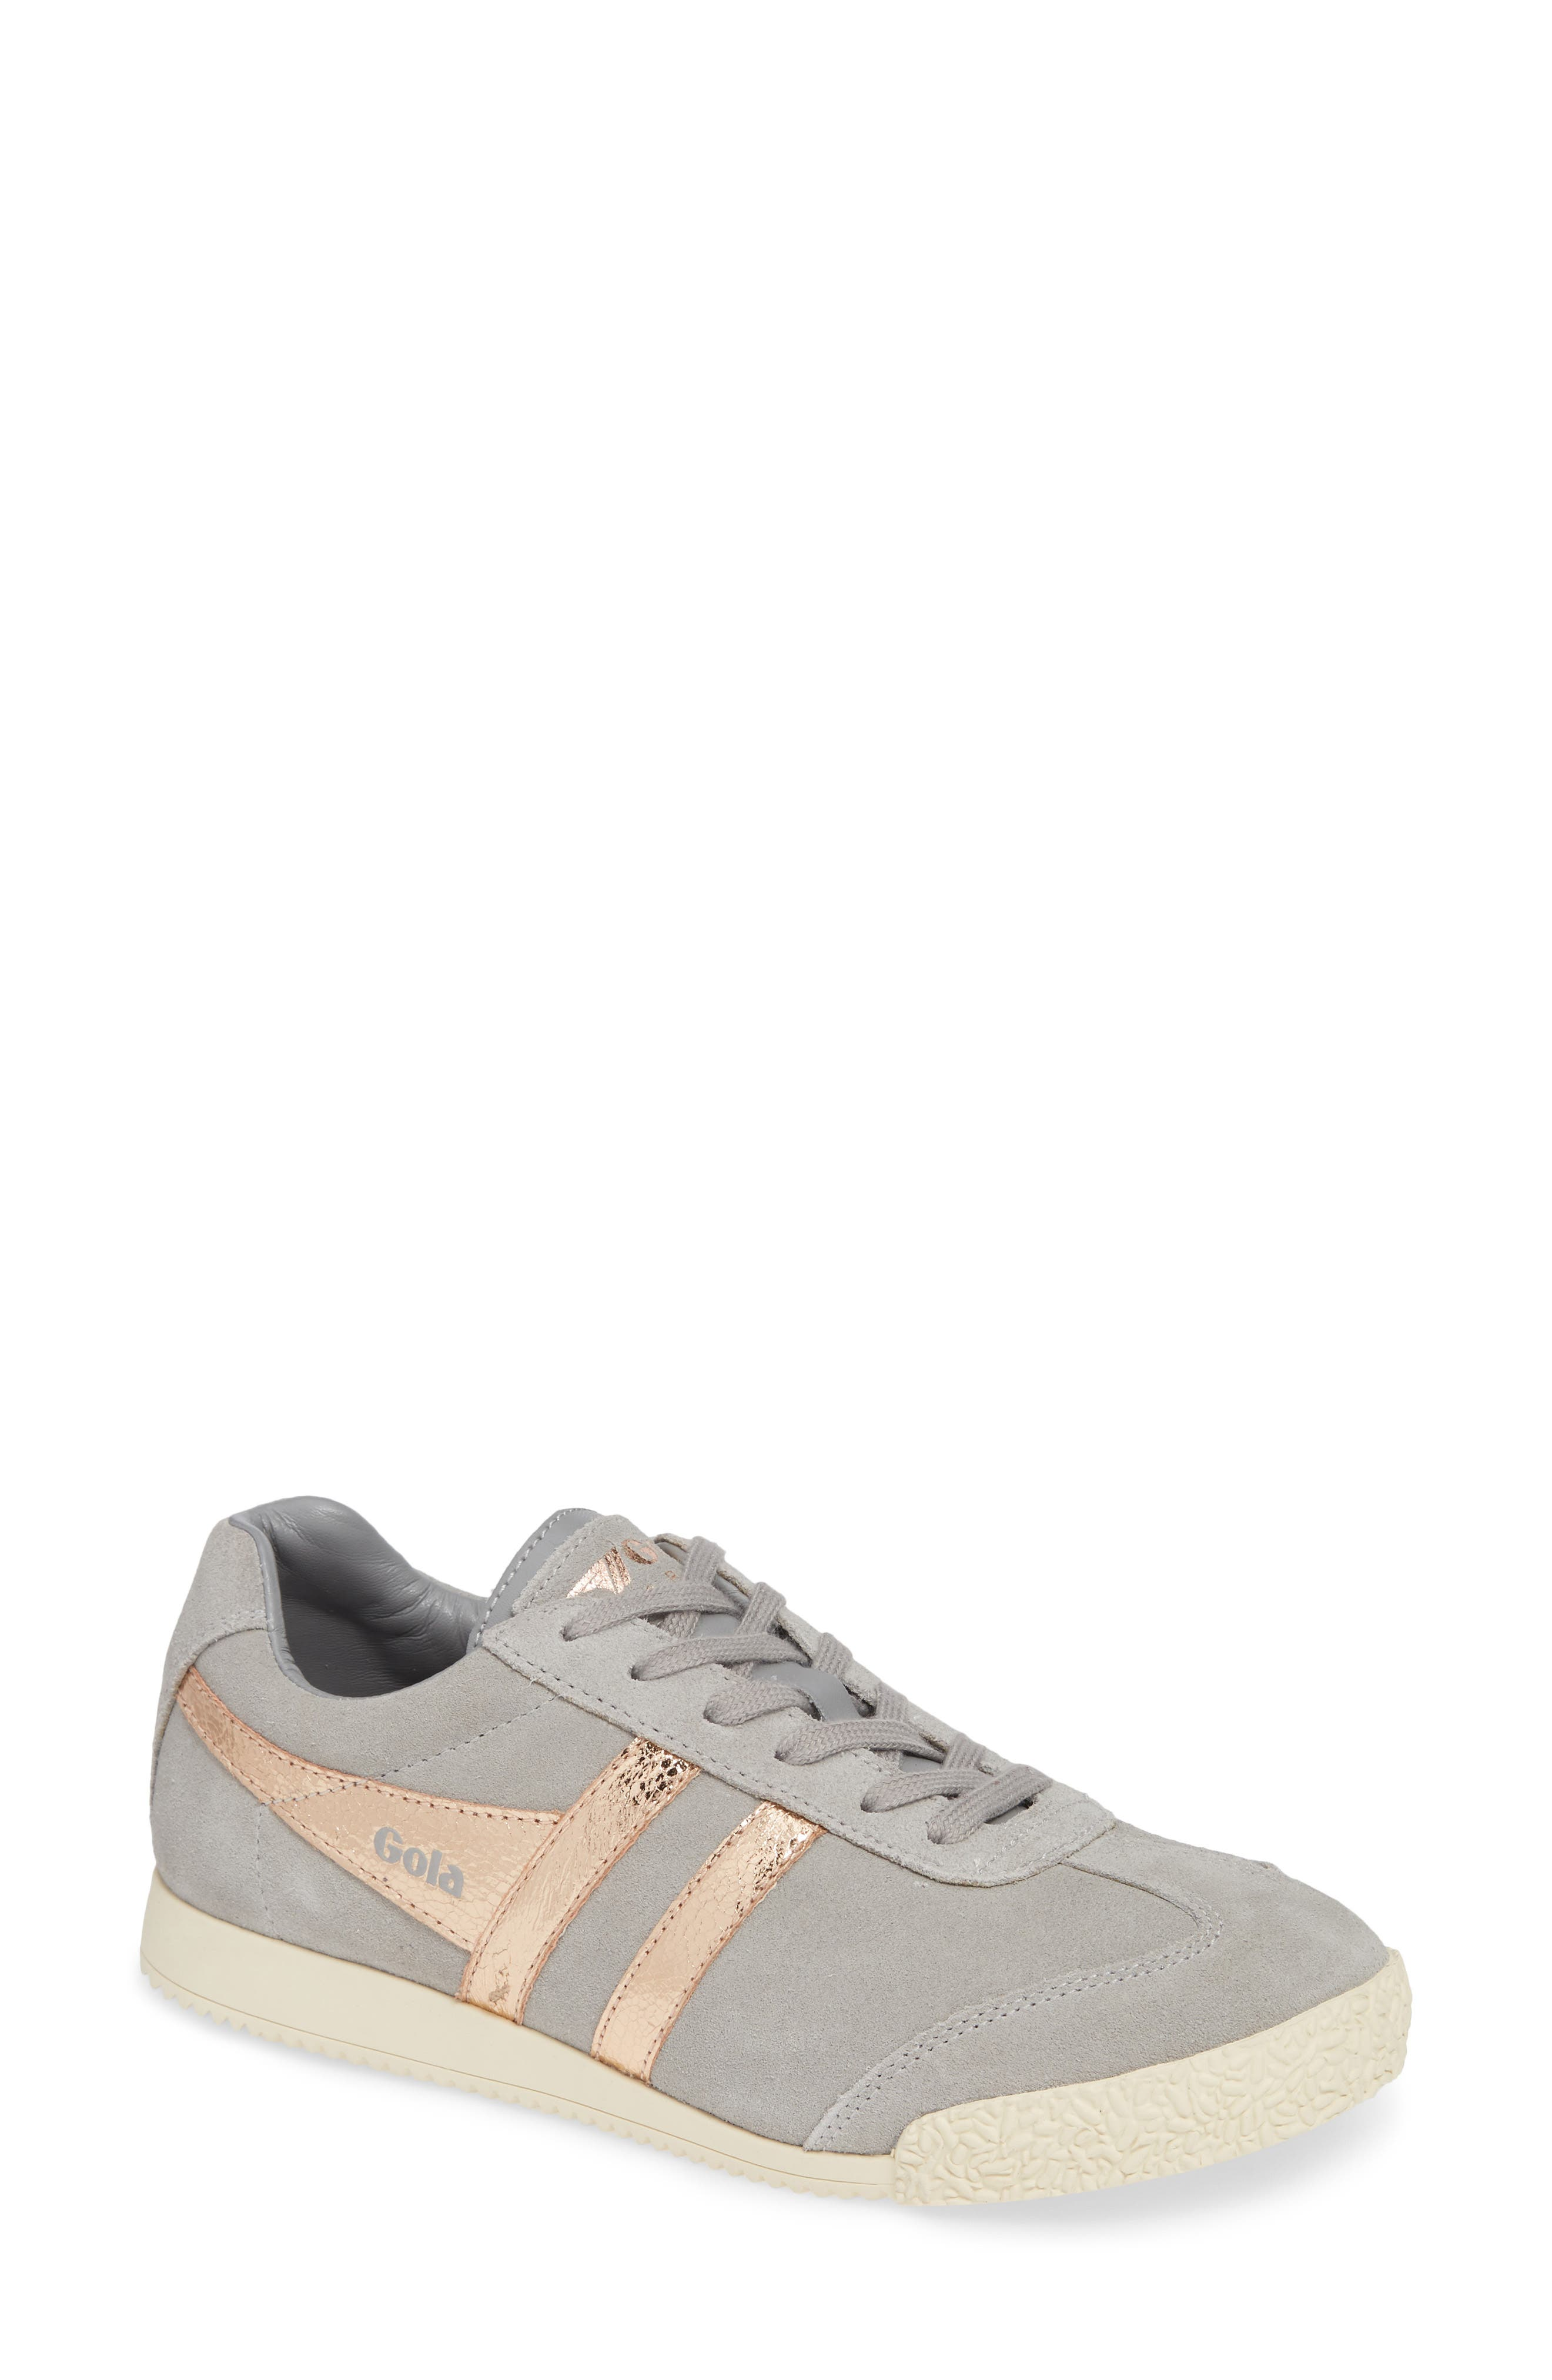 Gola Harrier Mirror Sneaker, Grey